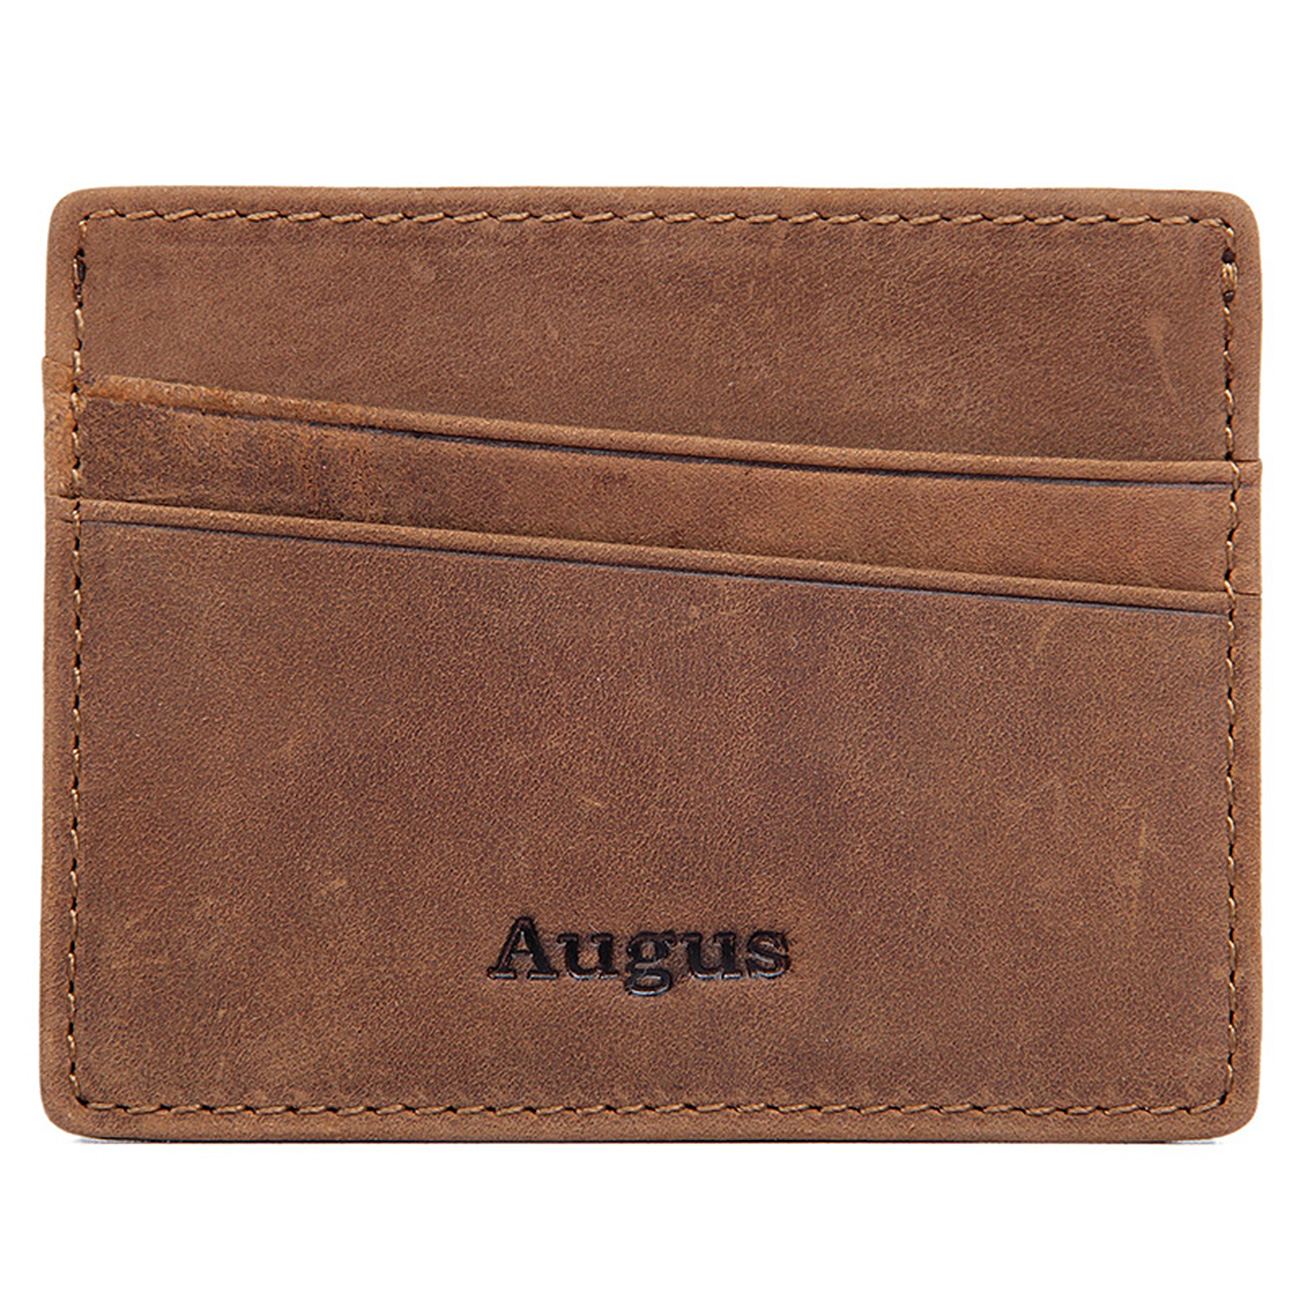 Augus Genuine Leather RFID Blocking Card Holder Case Credit Card ID Security